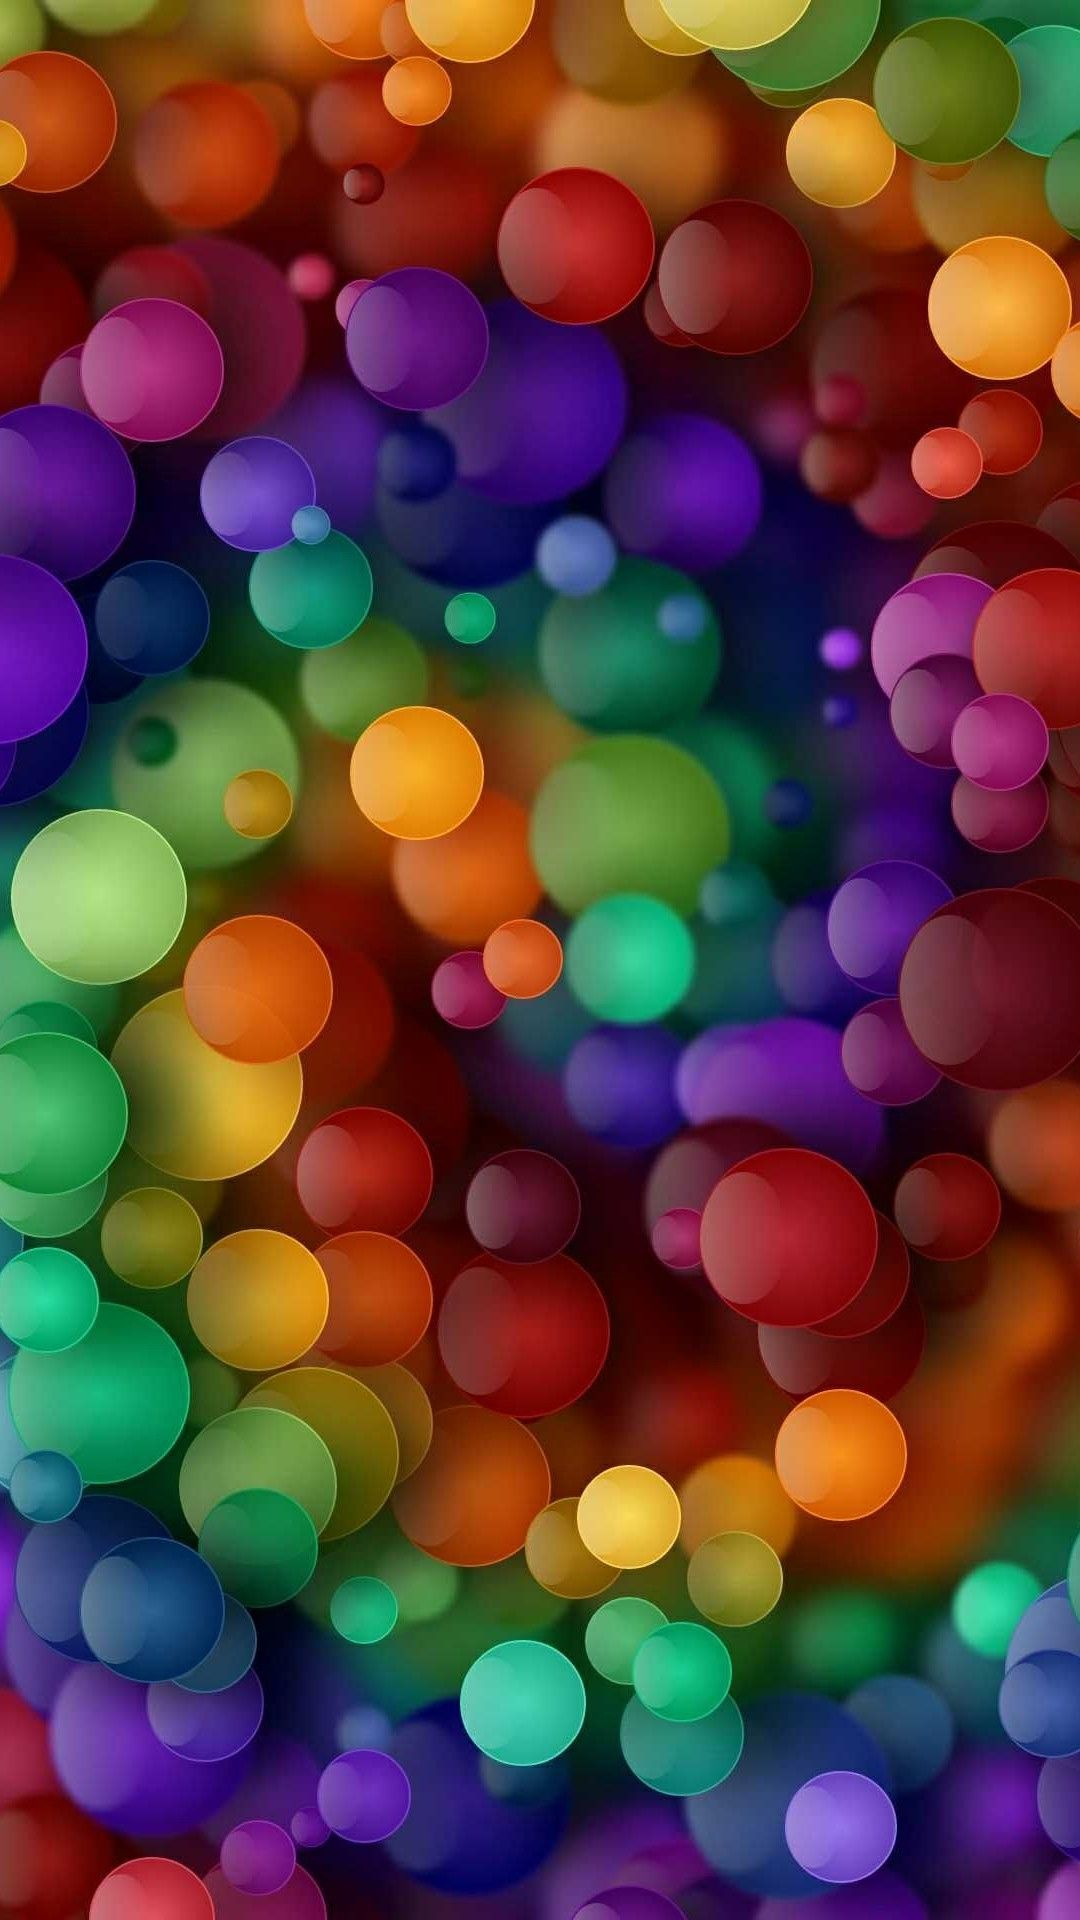 Pin By Amr Ahmed On Colors Rainbow Wallpaper Bubbles Wallpaper Colorful Wallpaper